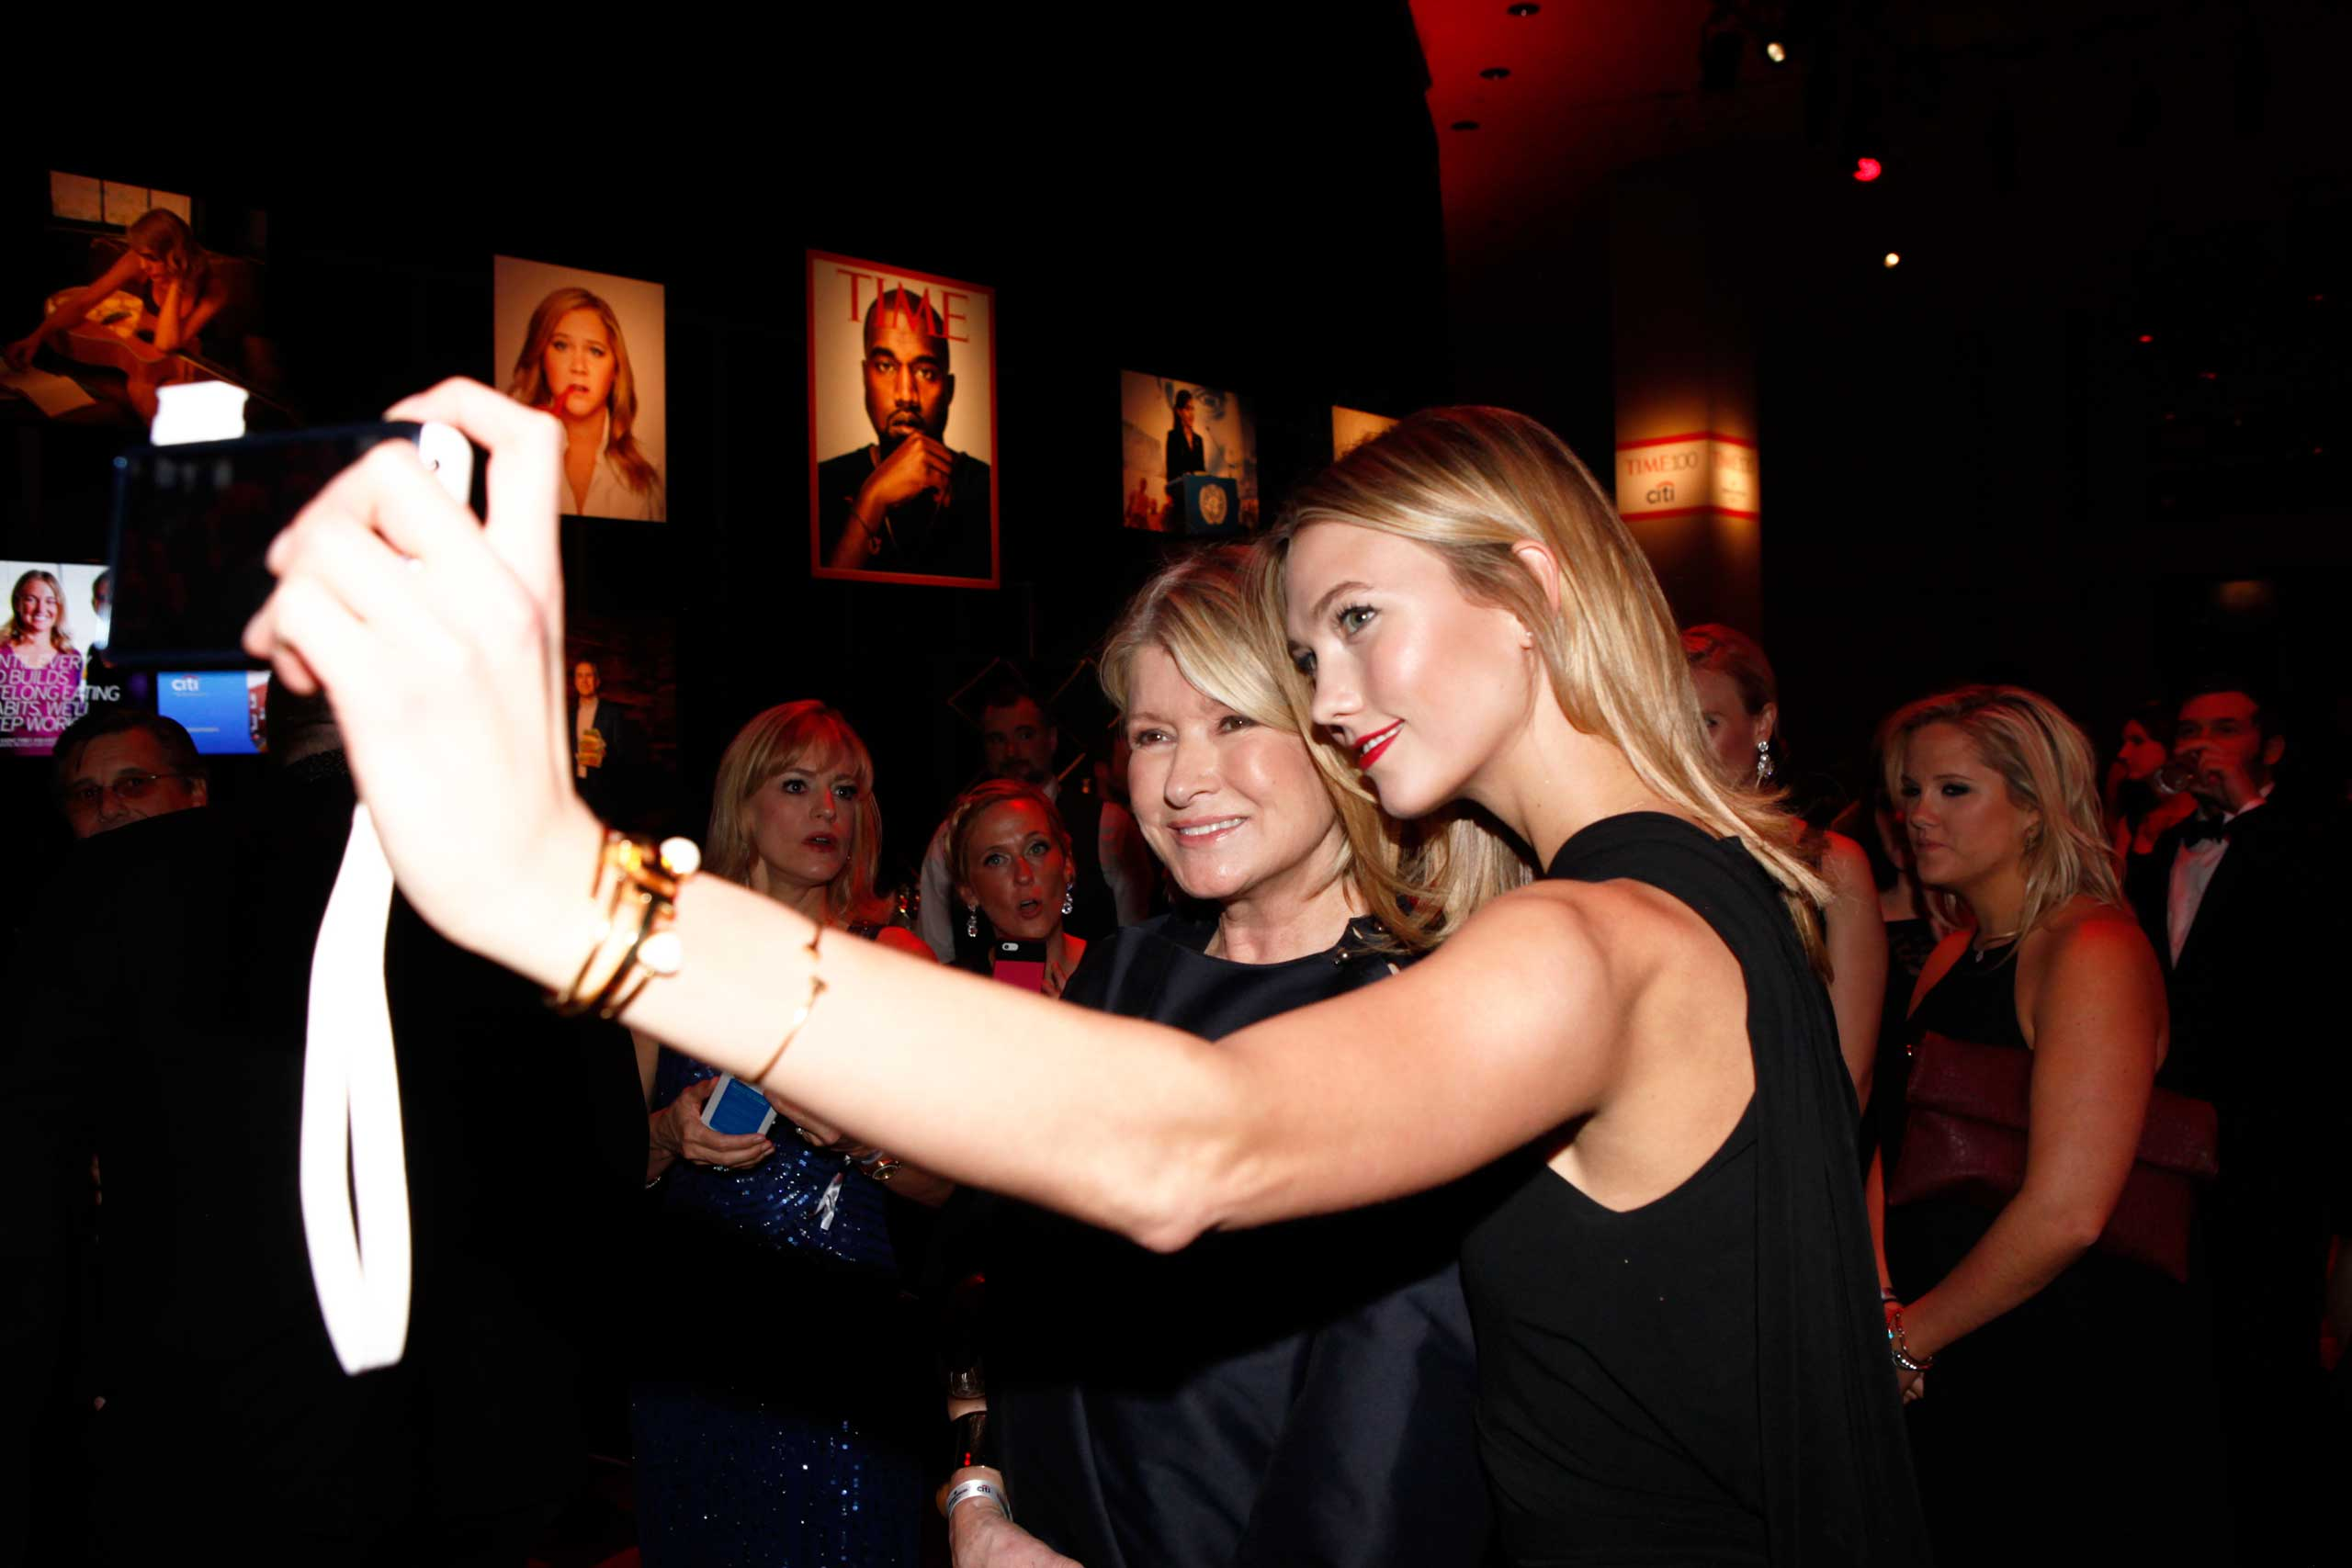 Martha Stewart and Karlie Kloss attend the TIME 100 Gala at Jazz at Lincoln Center in New York City on April 21, 2015.